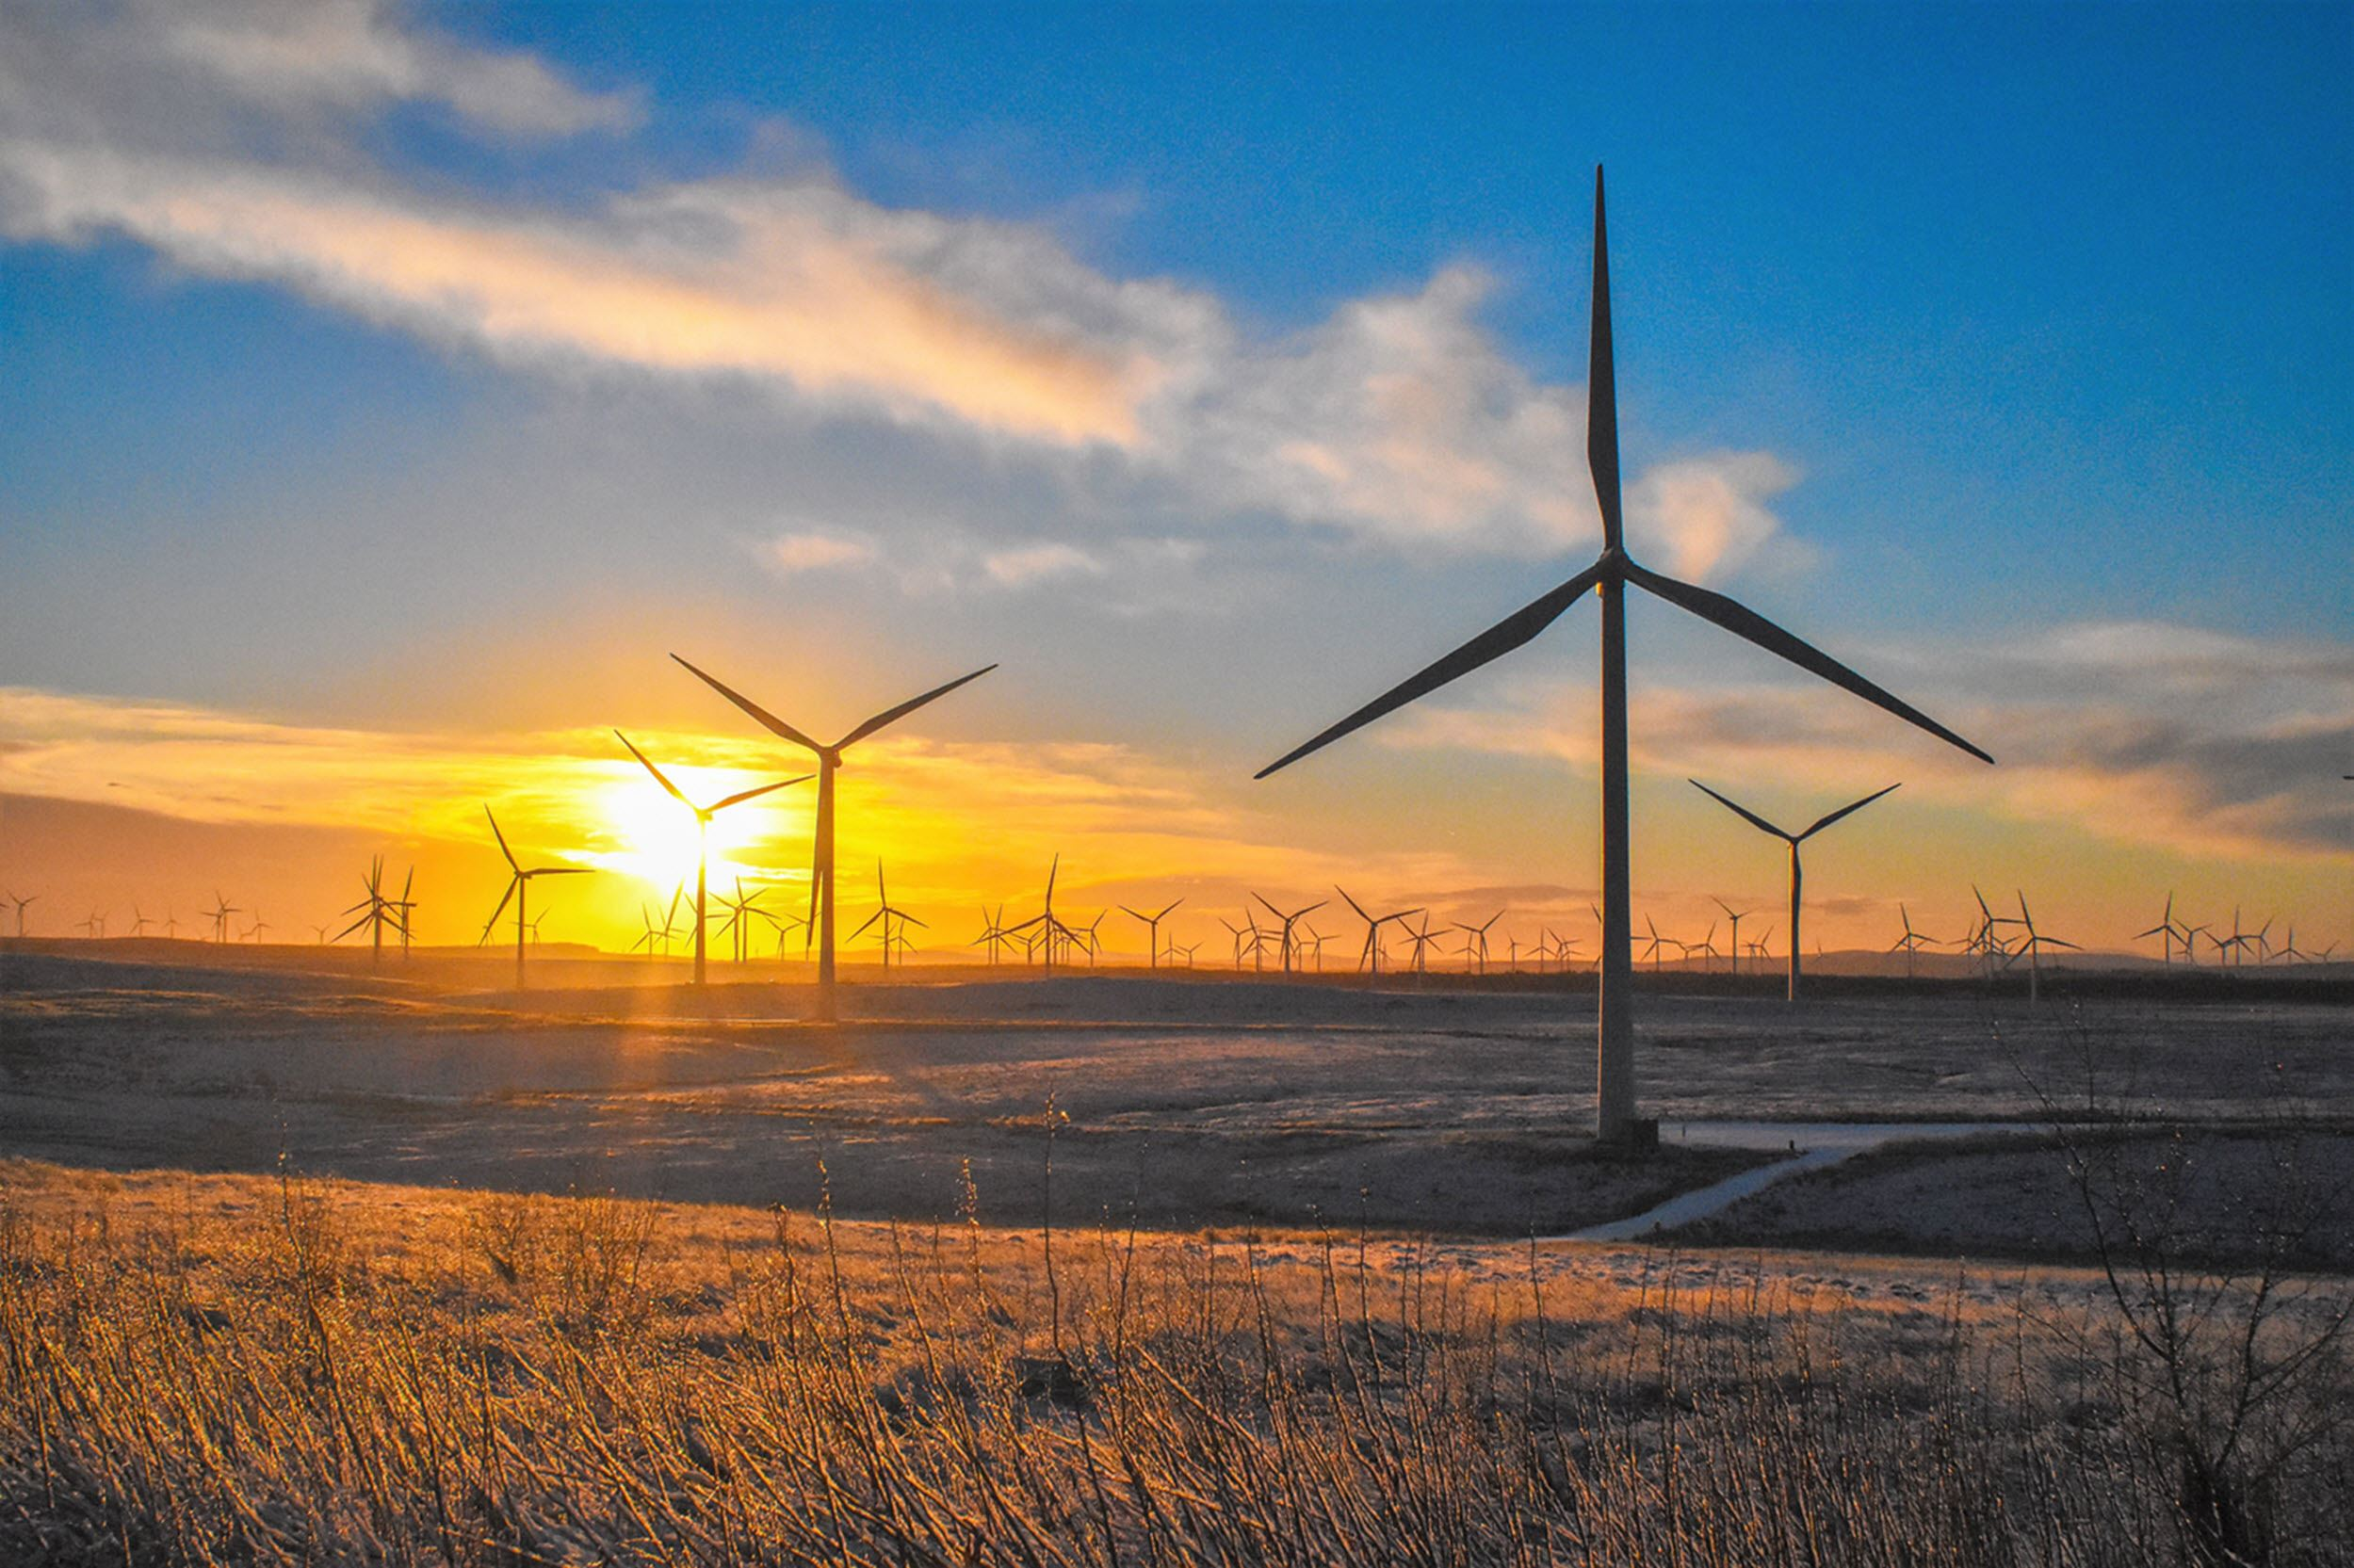 Australia says it will hit 2030 emissions target without counting old carbon credits